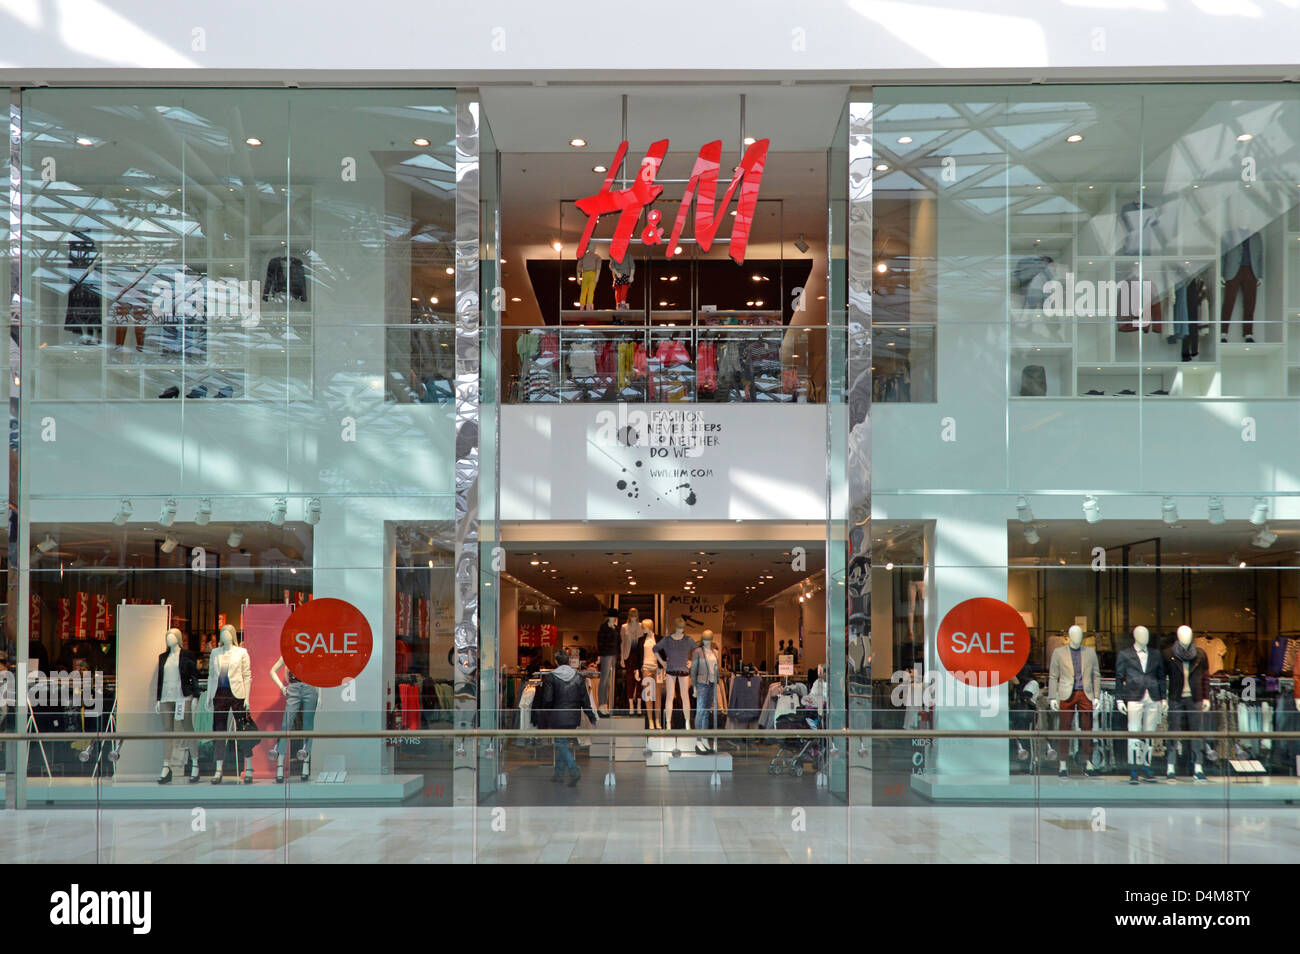 h m store with interior views through shop front window displays and stock photo 54535739 alamy. Black Bedroom Furniture Sets. Home Design Ideas